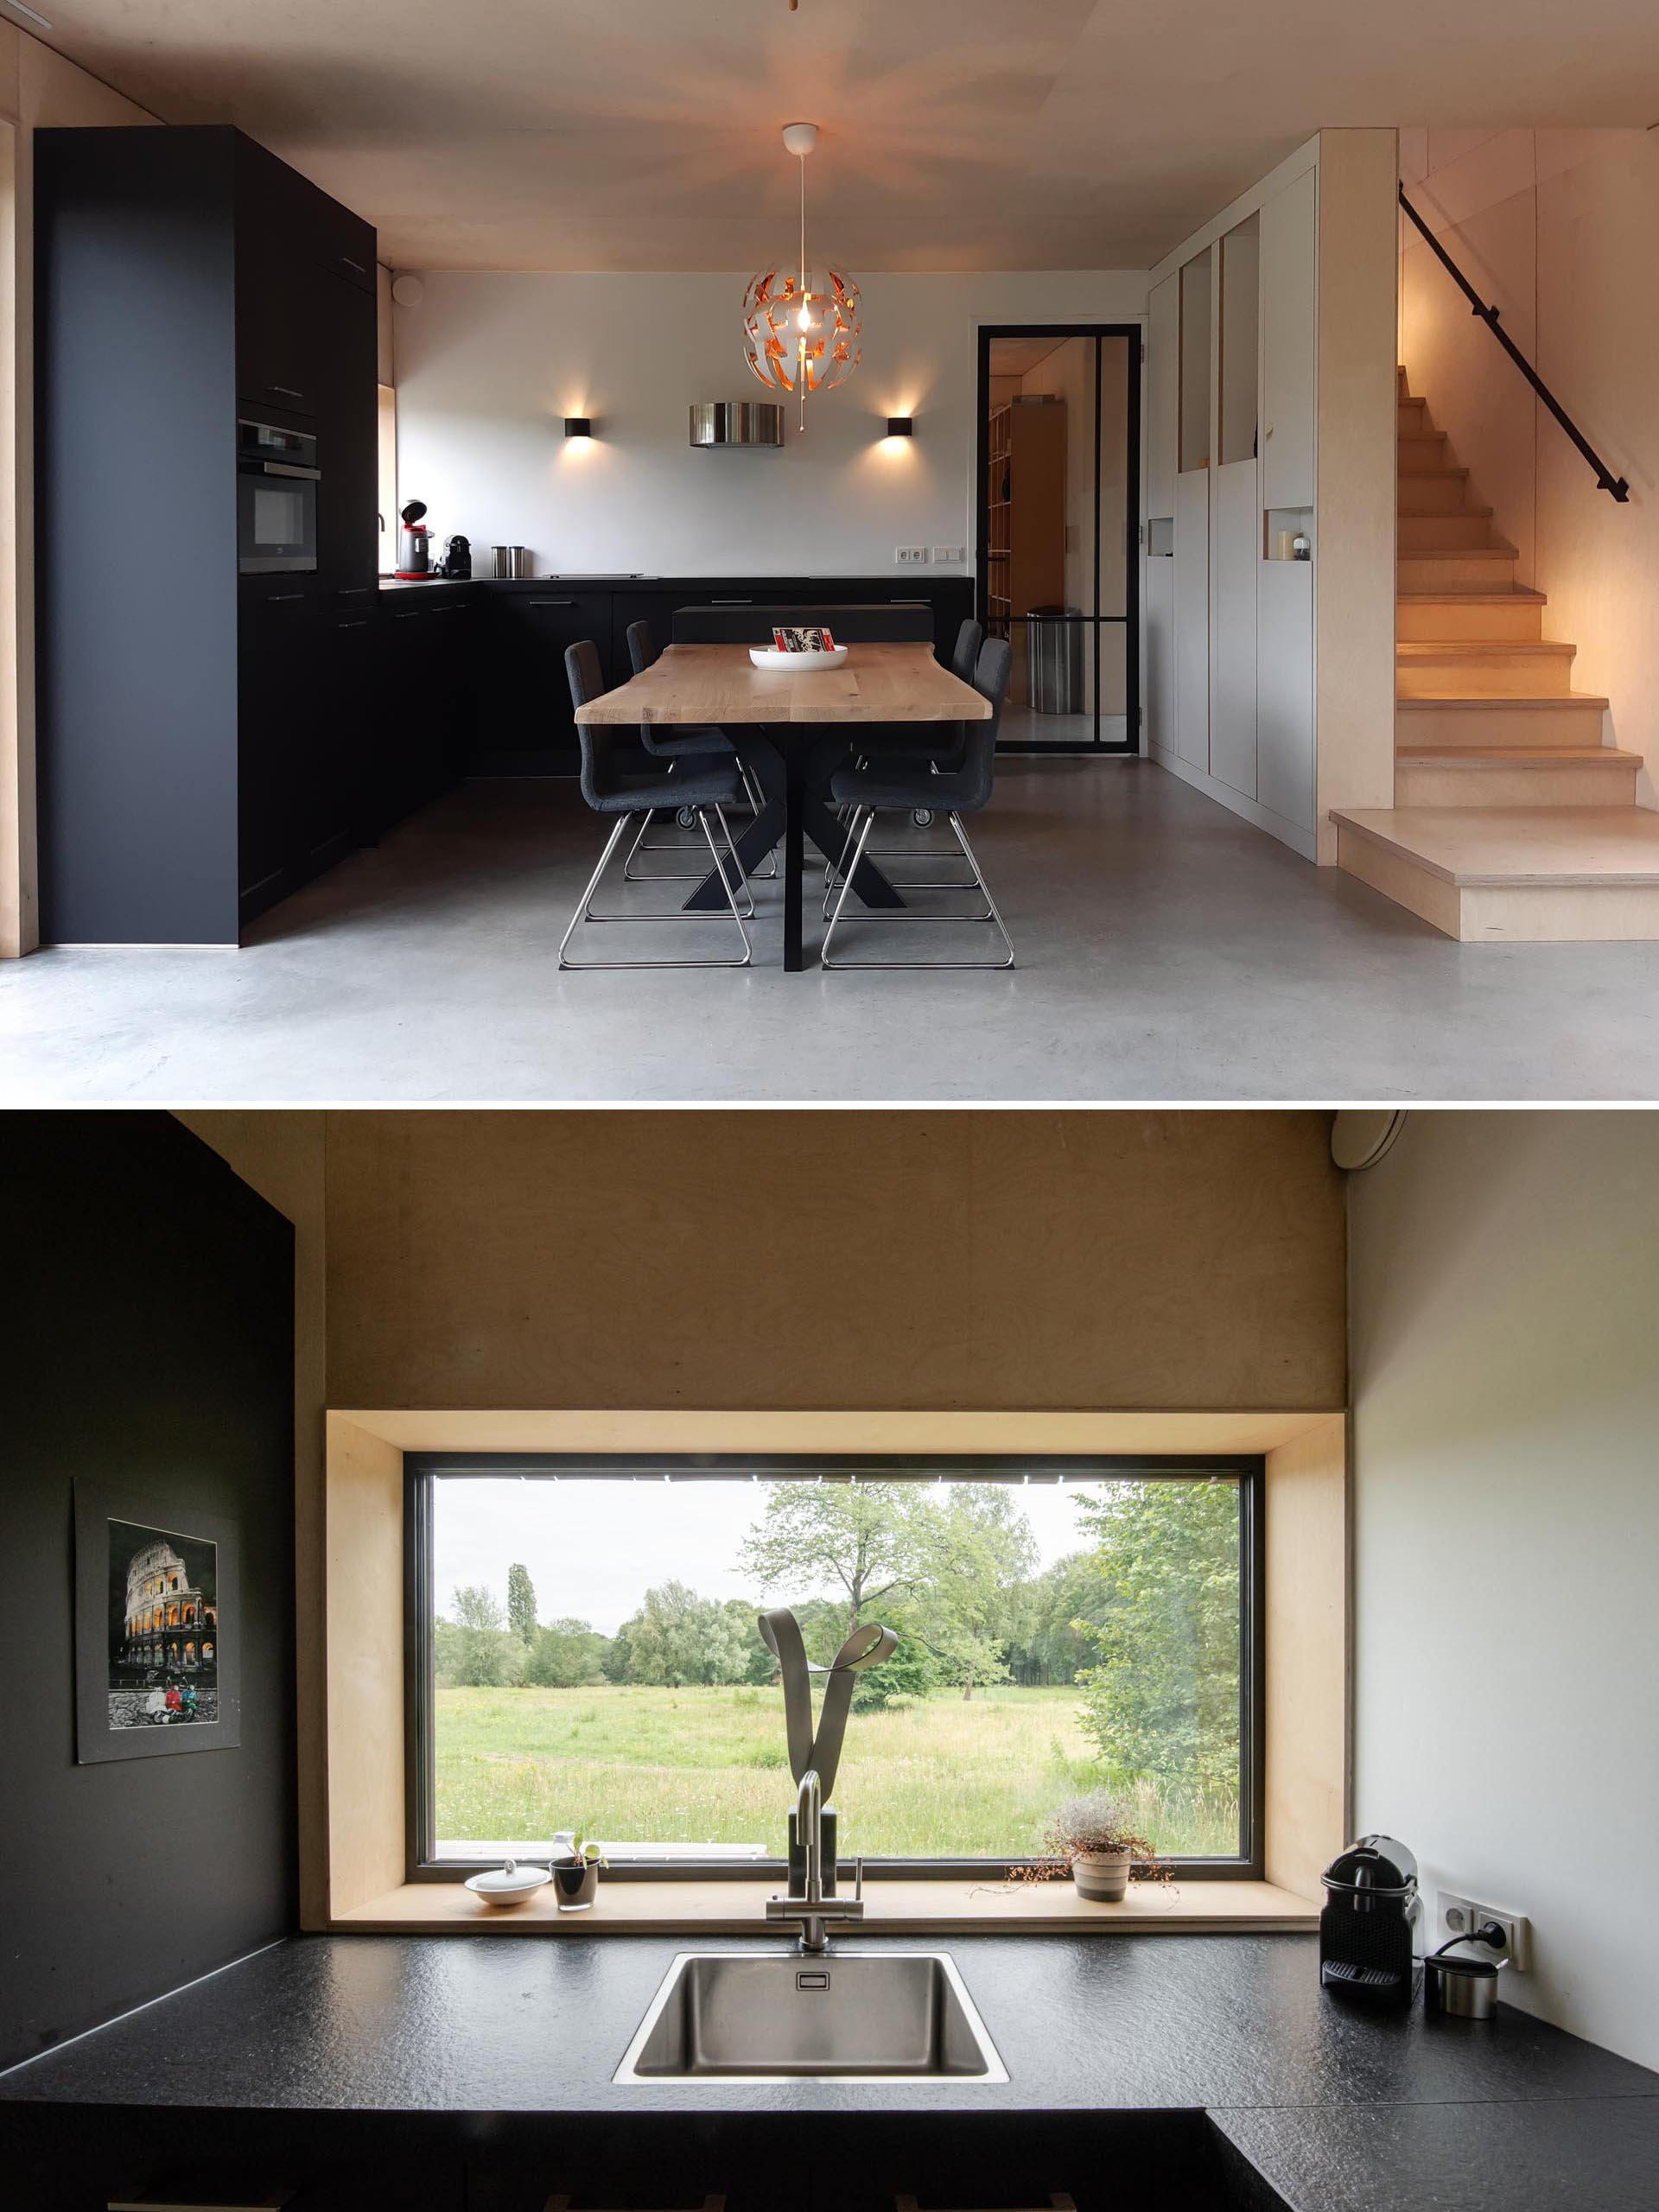 A modern matte black kitchen with wood dining table.